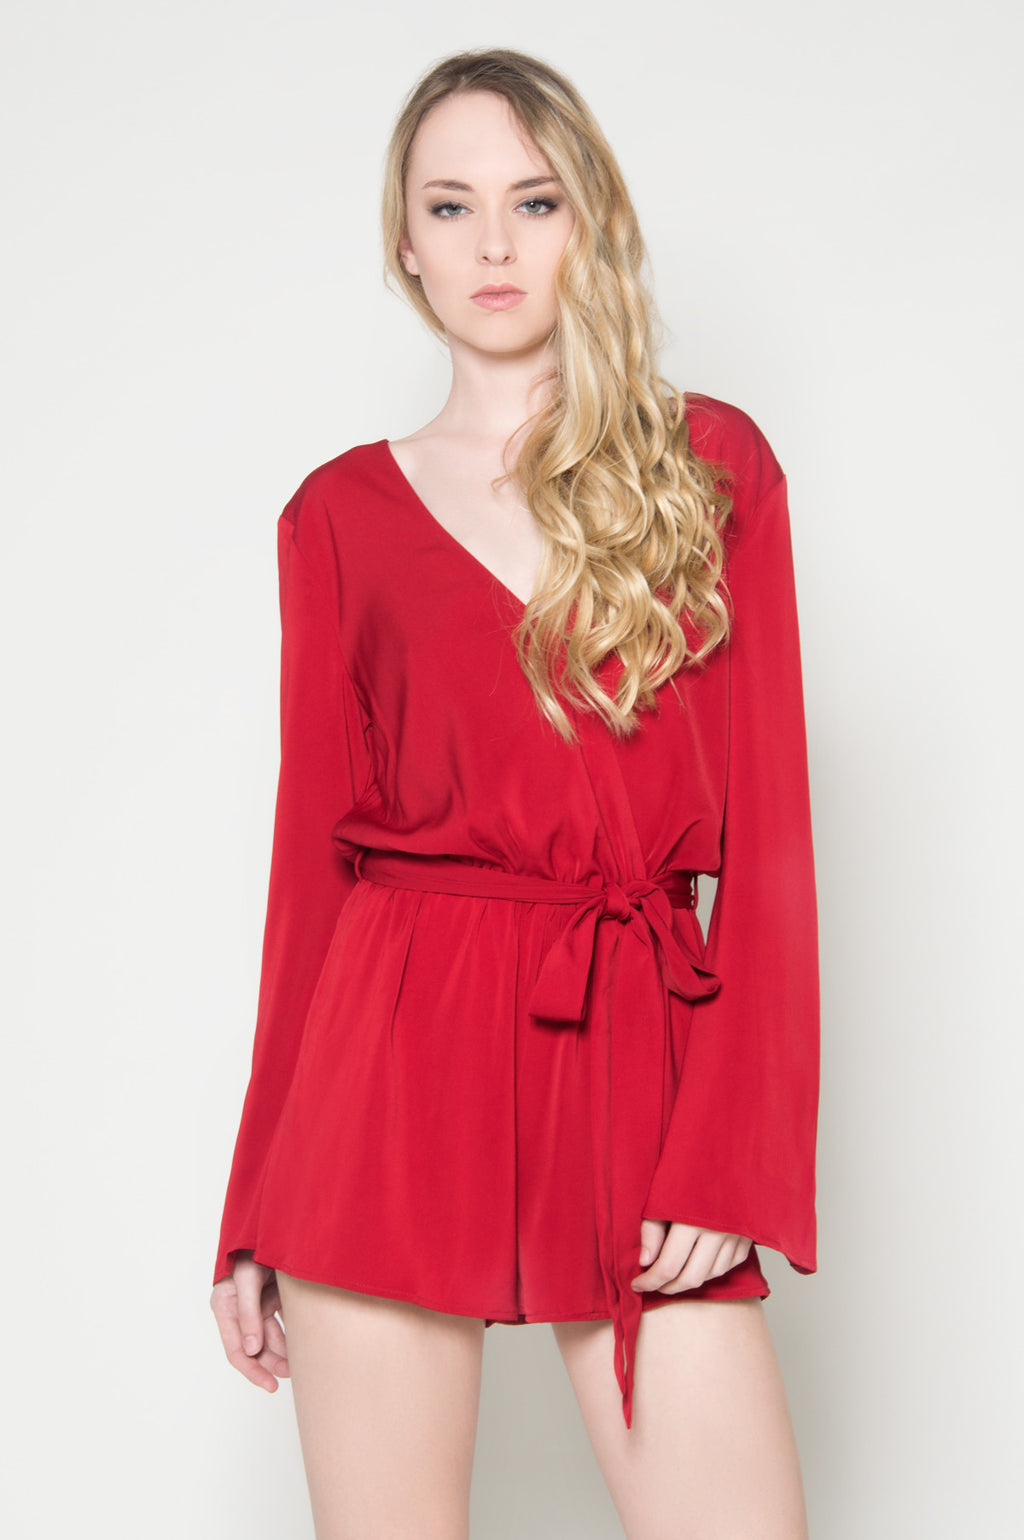 Valentina bell sleeve romper, Rompers